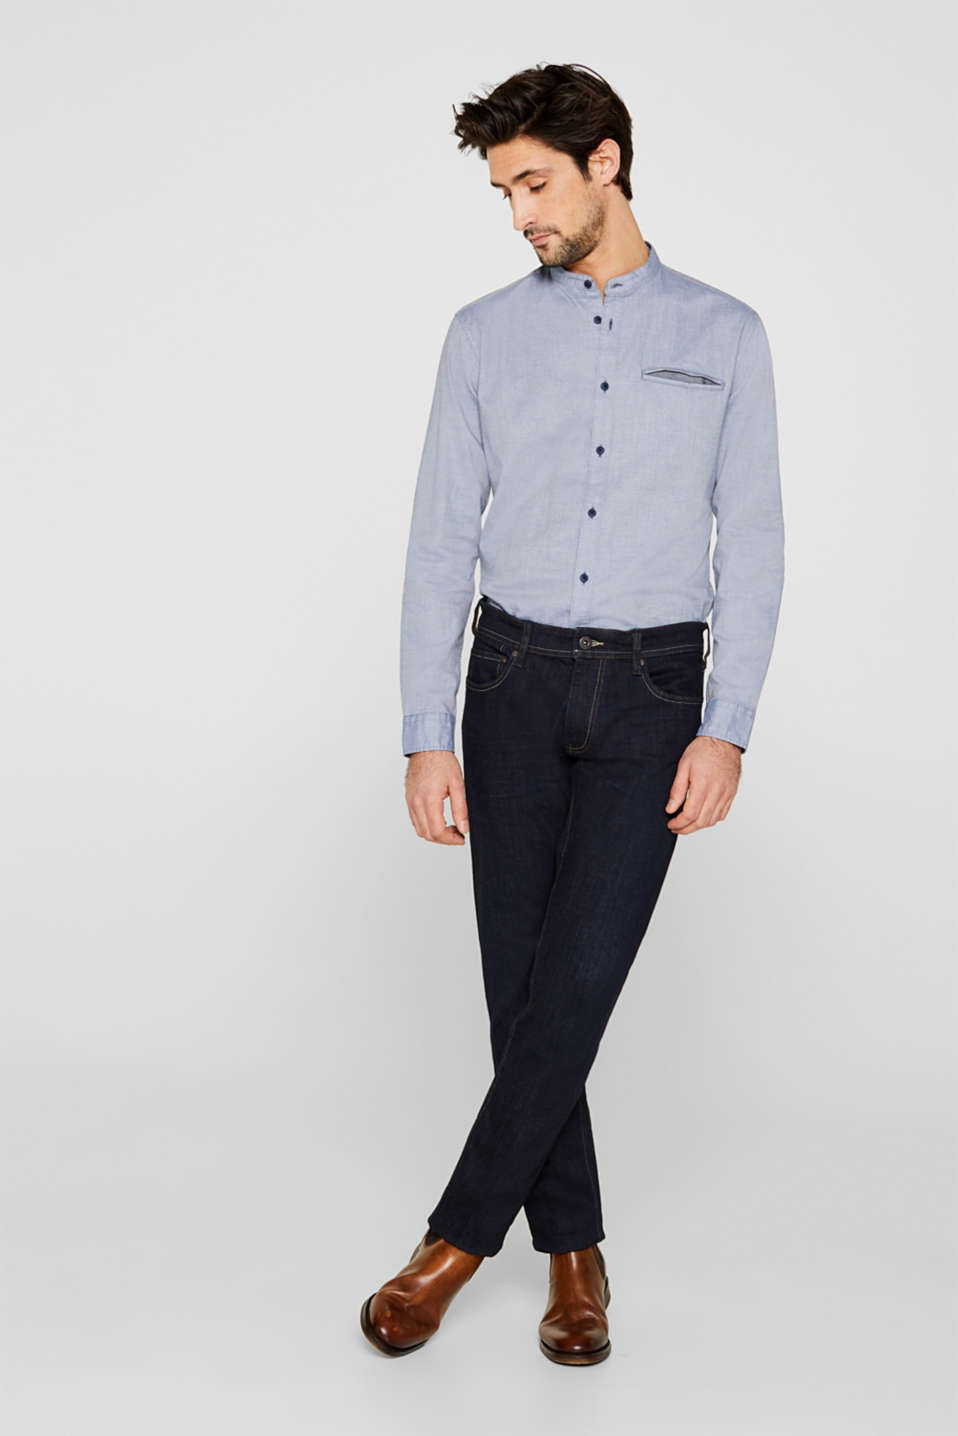 Shirt with band collar, 100% cotton, GREY BLUE 5, detail image number 0